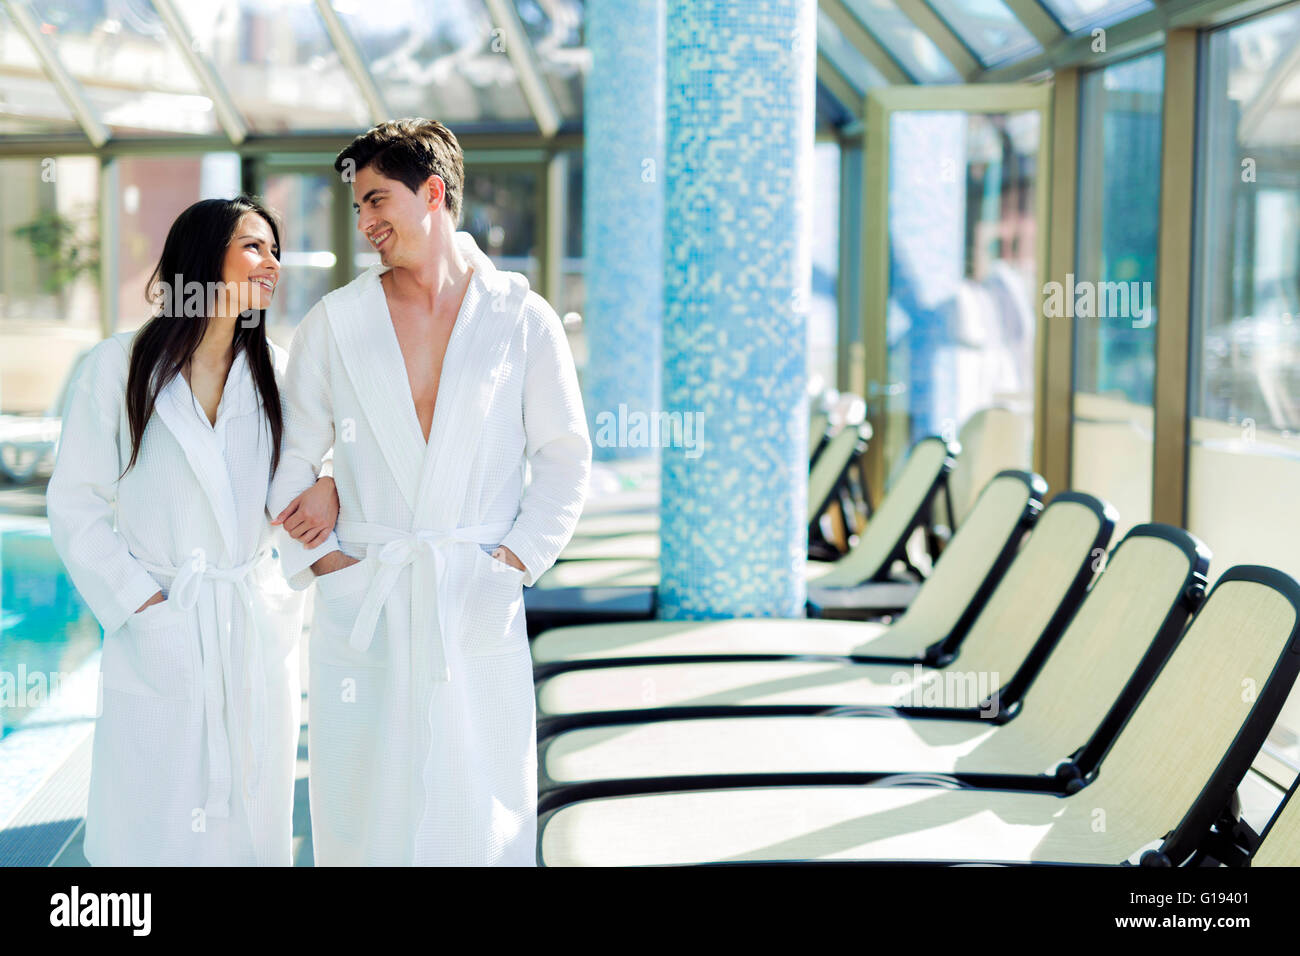 Couple in love standing next to a  pool in a  robe and relaxing - Stock Image